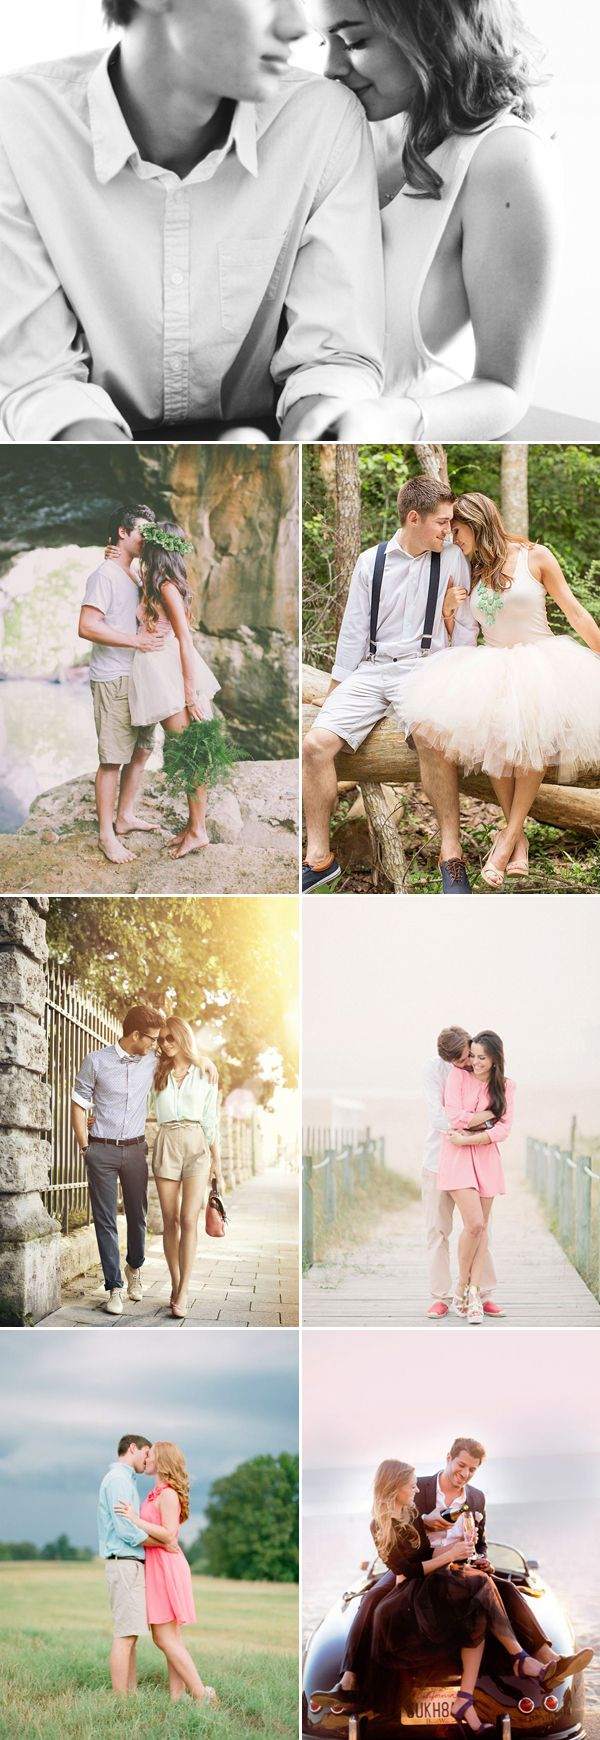 29 Natural Lifestyle Engagement Photos